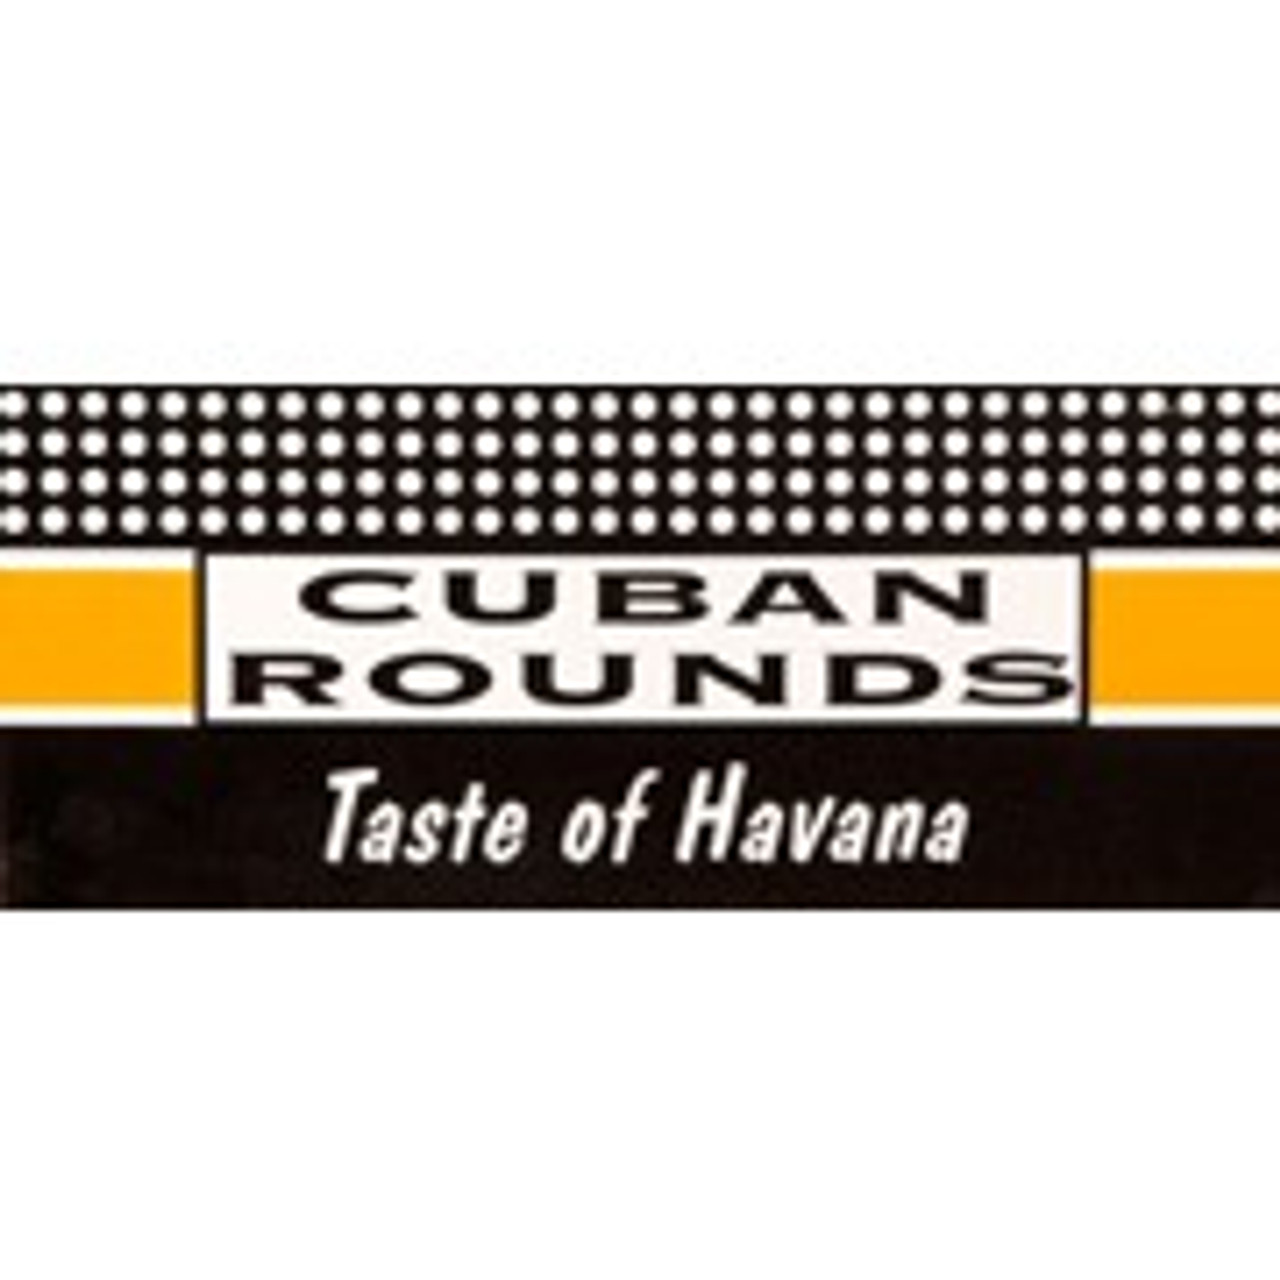 Cuban Rounds Torpedo Maduro Cigars - 6 x 52 (Bundle of 20)